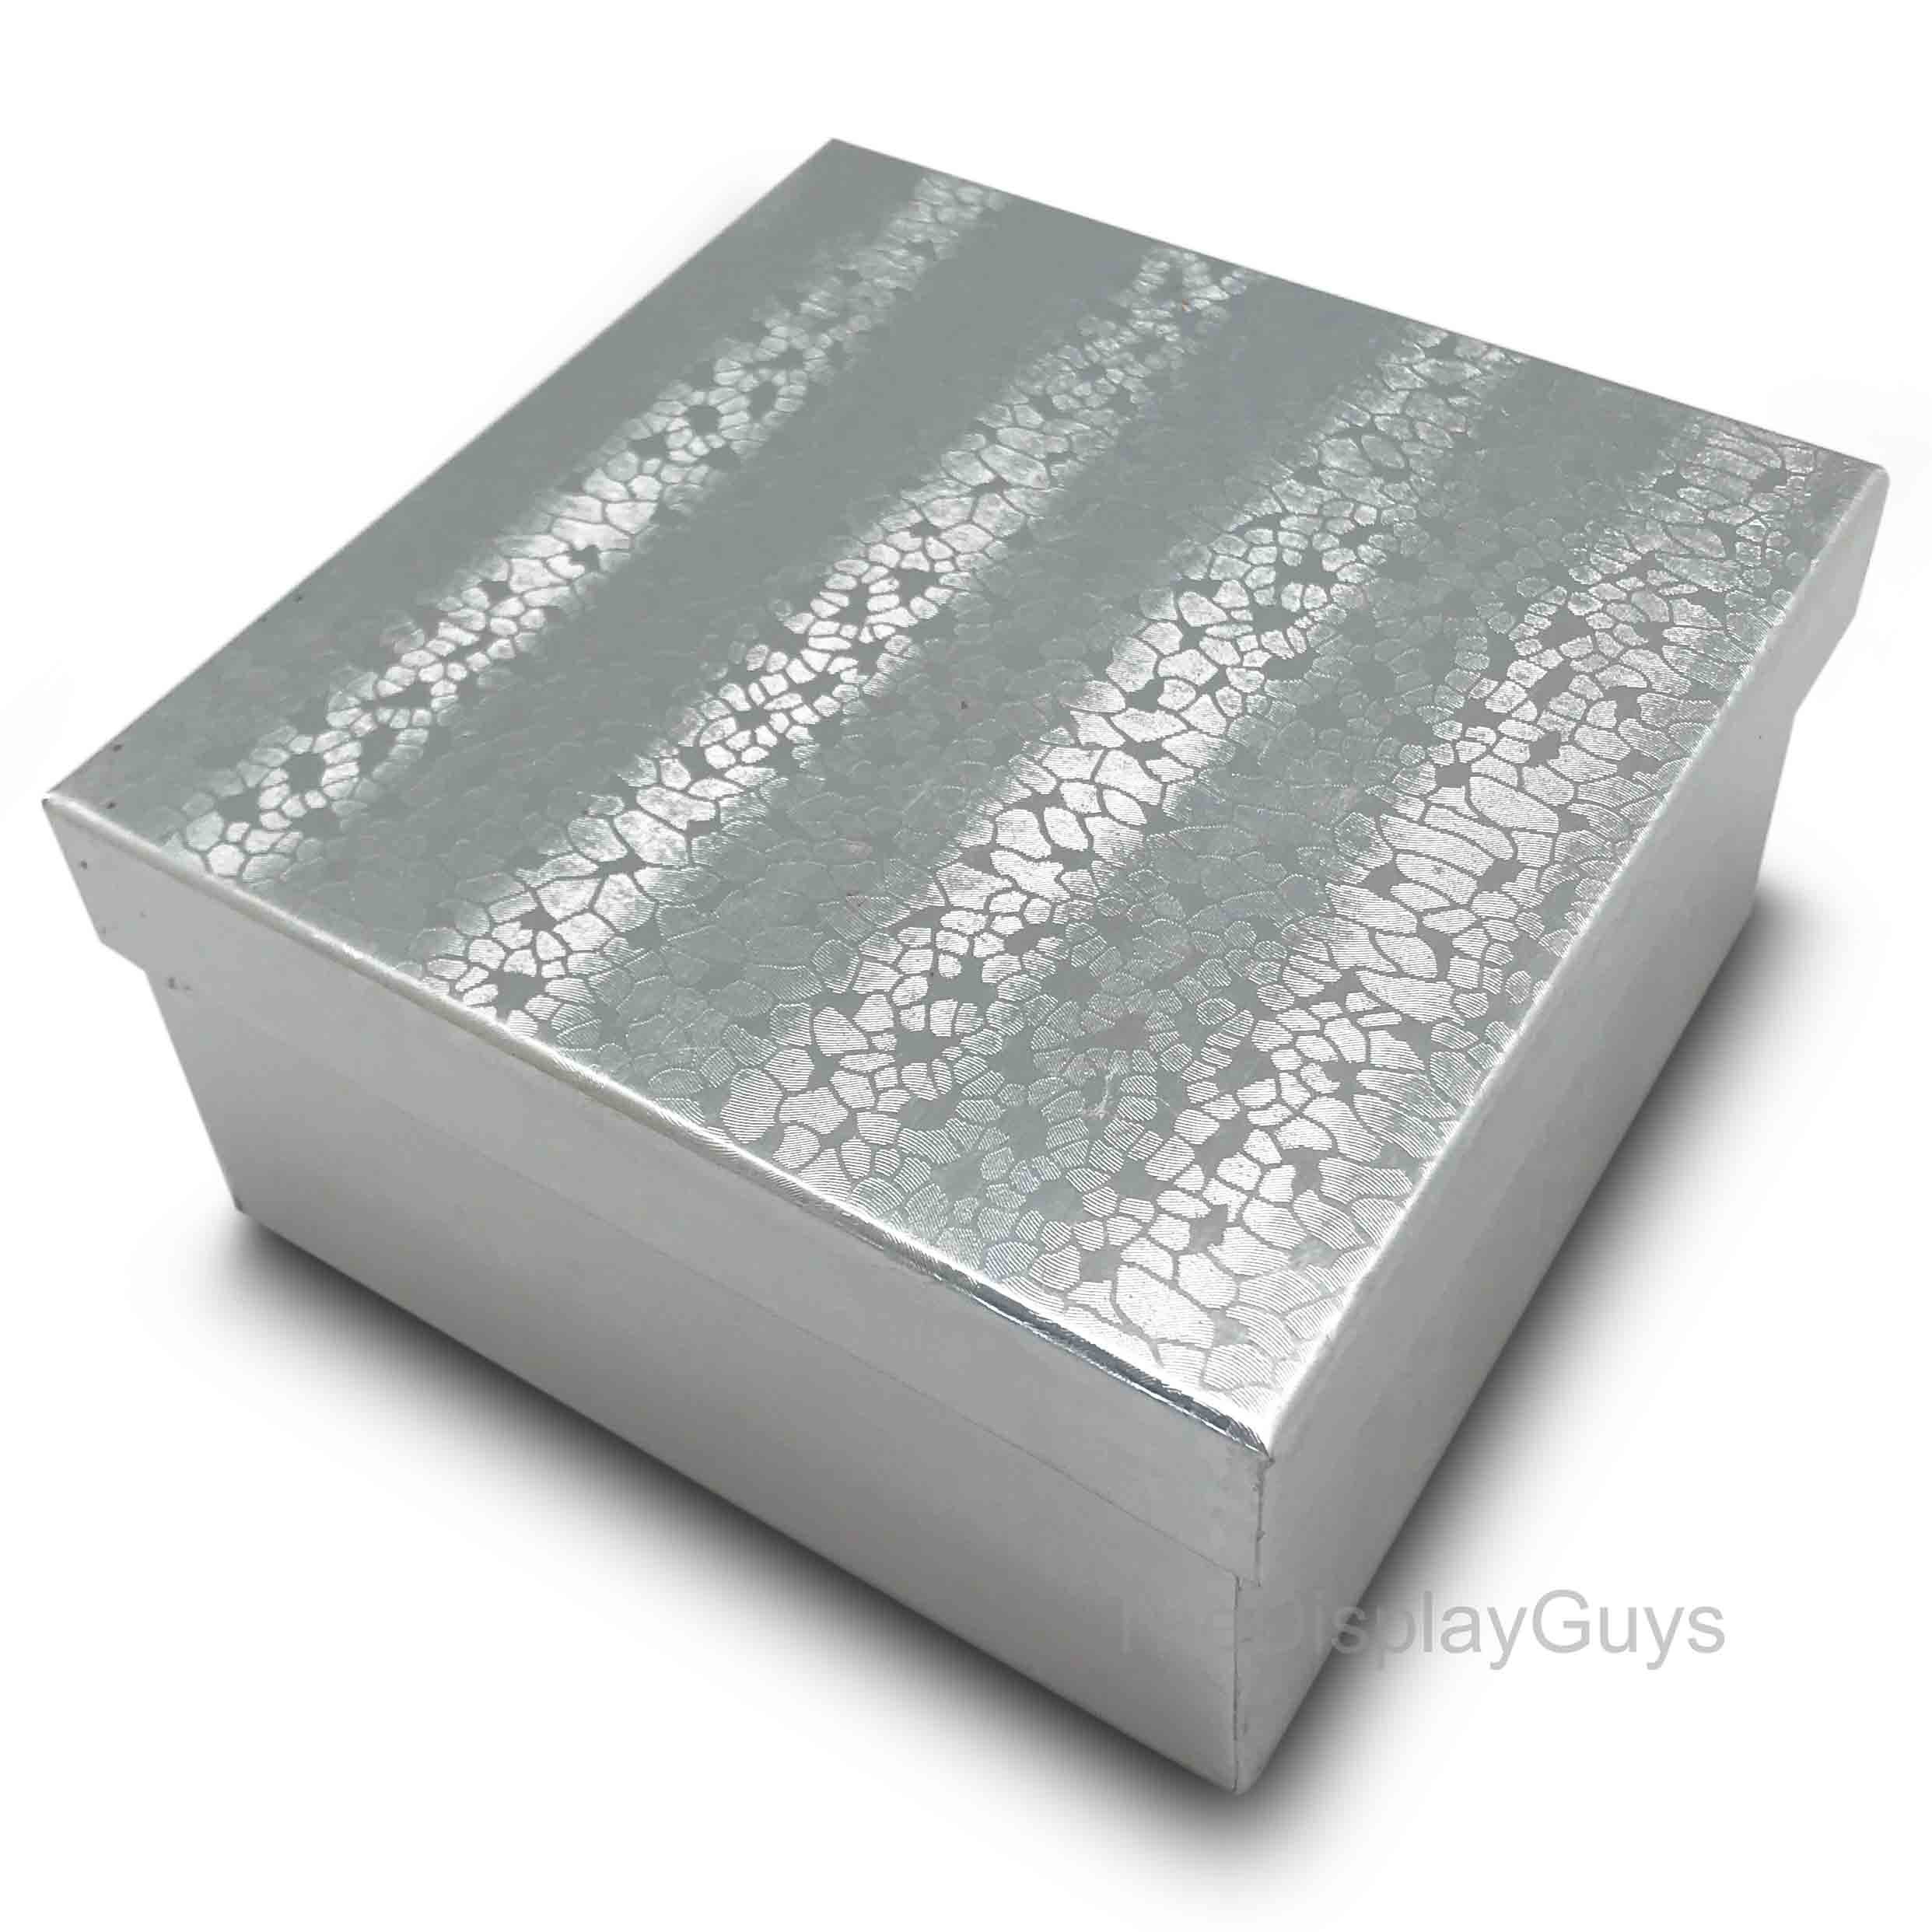 The Display Guys, Pack of 25 Silver 3 3/4x3 3/4x2 inches Cotton Filled Paper Jewelry Box Gift Display Case(#34)